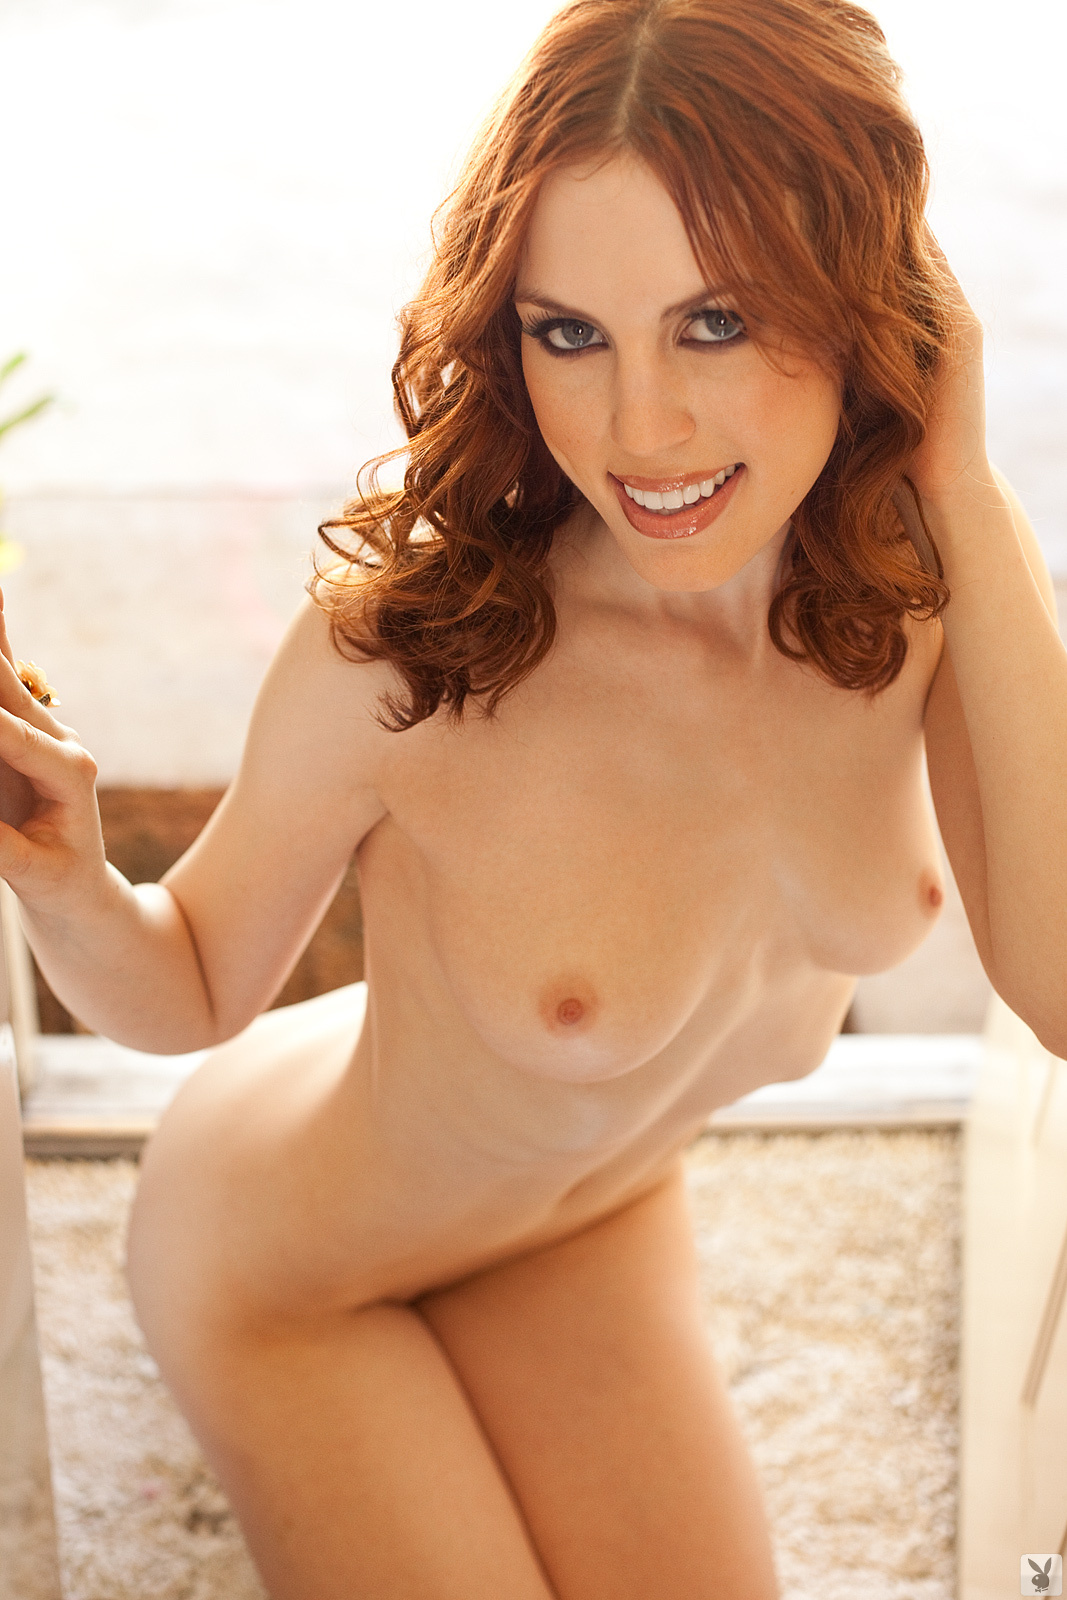 haydn-porter-redhead-wet-hot-summer-playboy-16